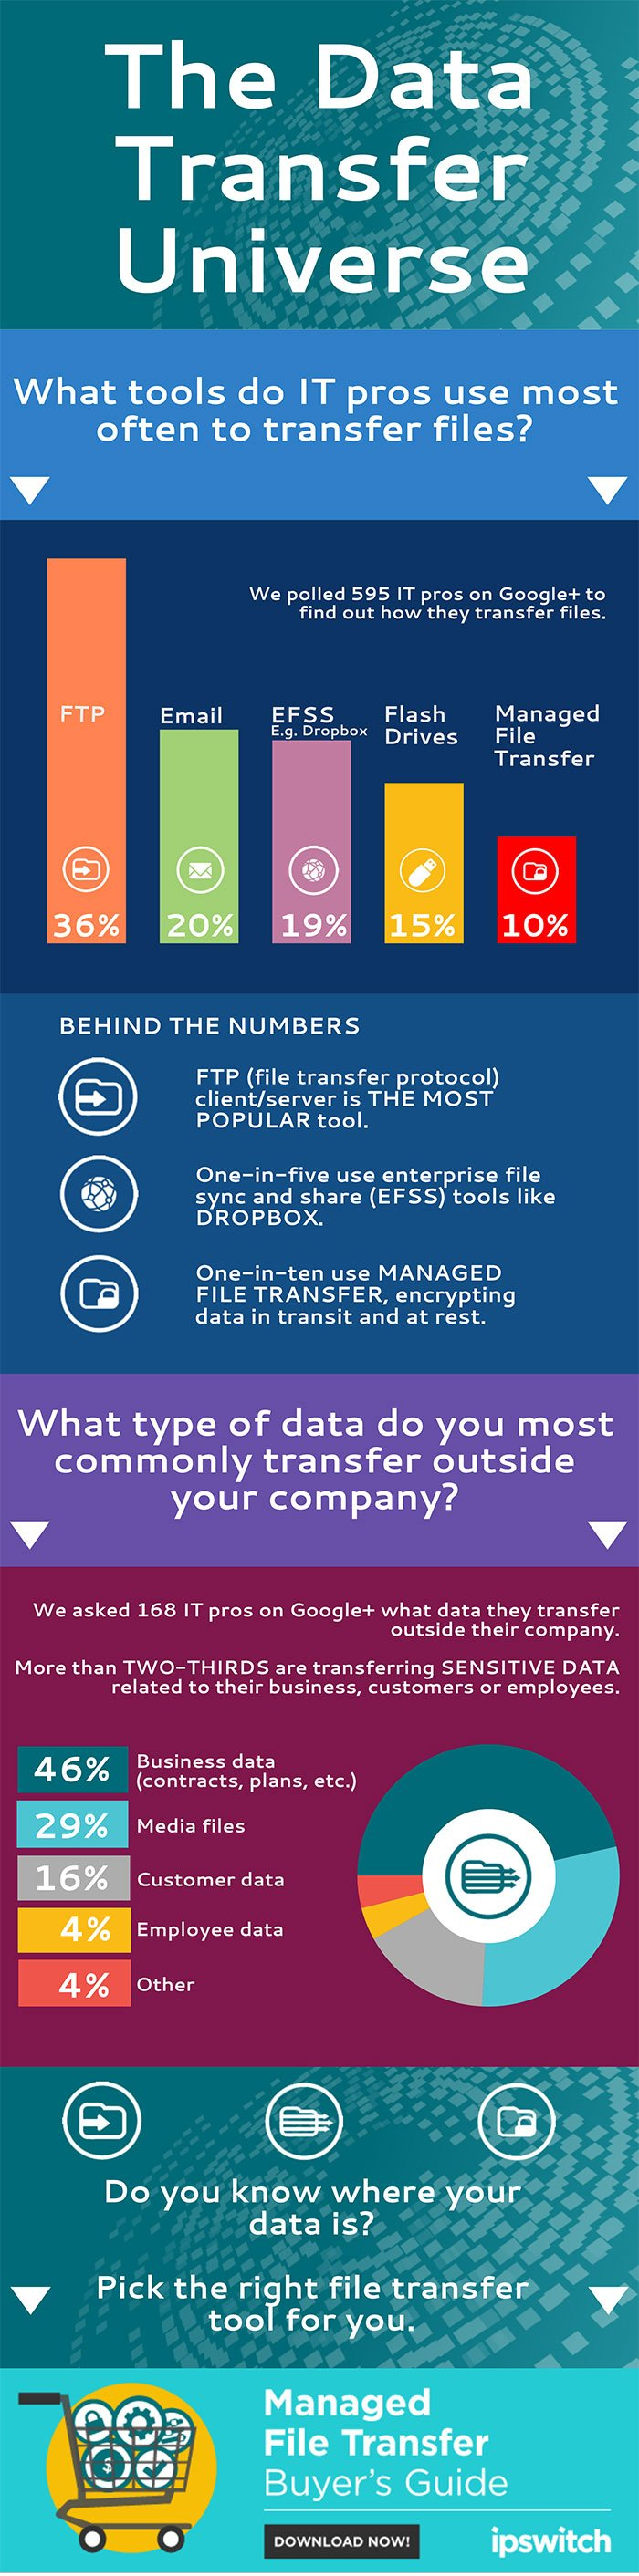 Data-Transfer-Universe-infographic_Apr-2016-(1)